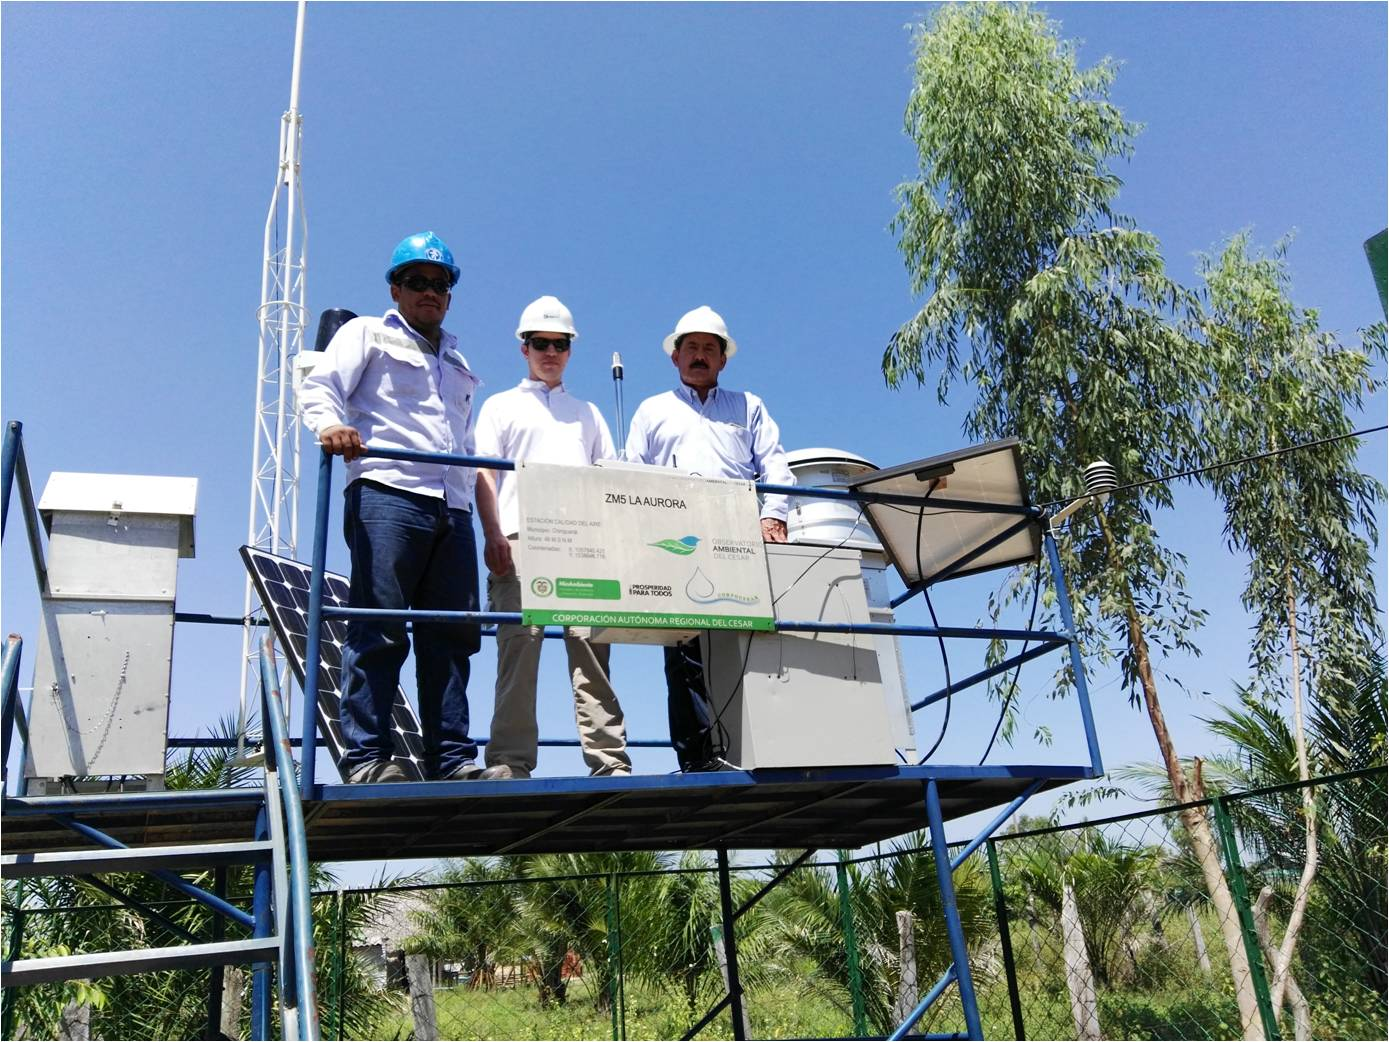 CORPOCESAR and Drummond Ltd. officials during the transfer of air quality measurement equipment